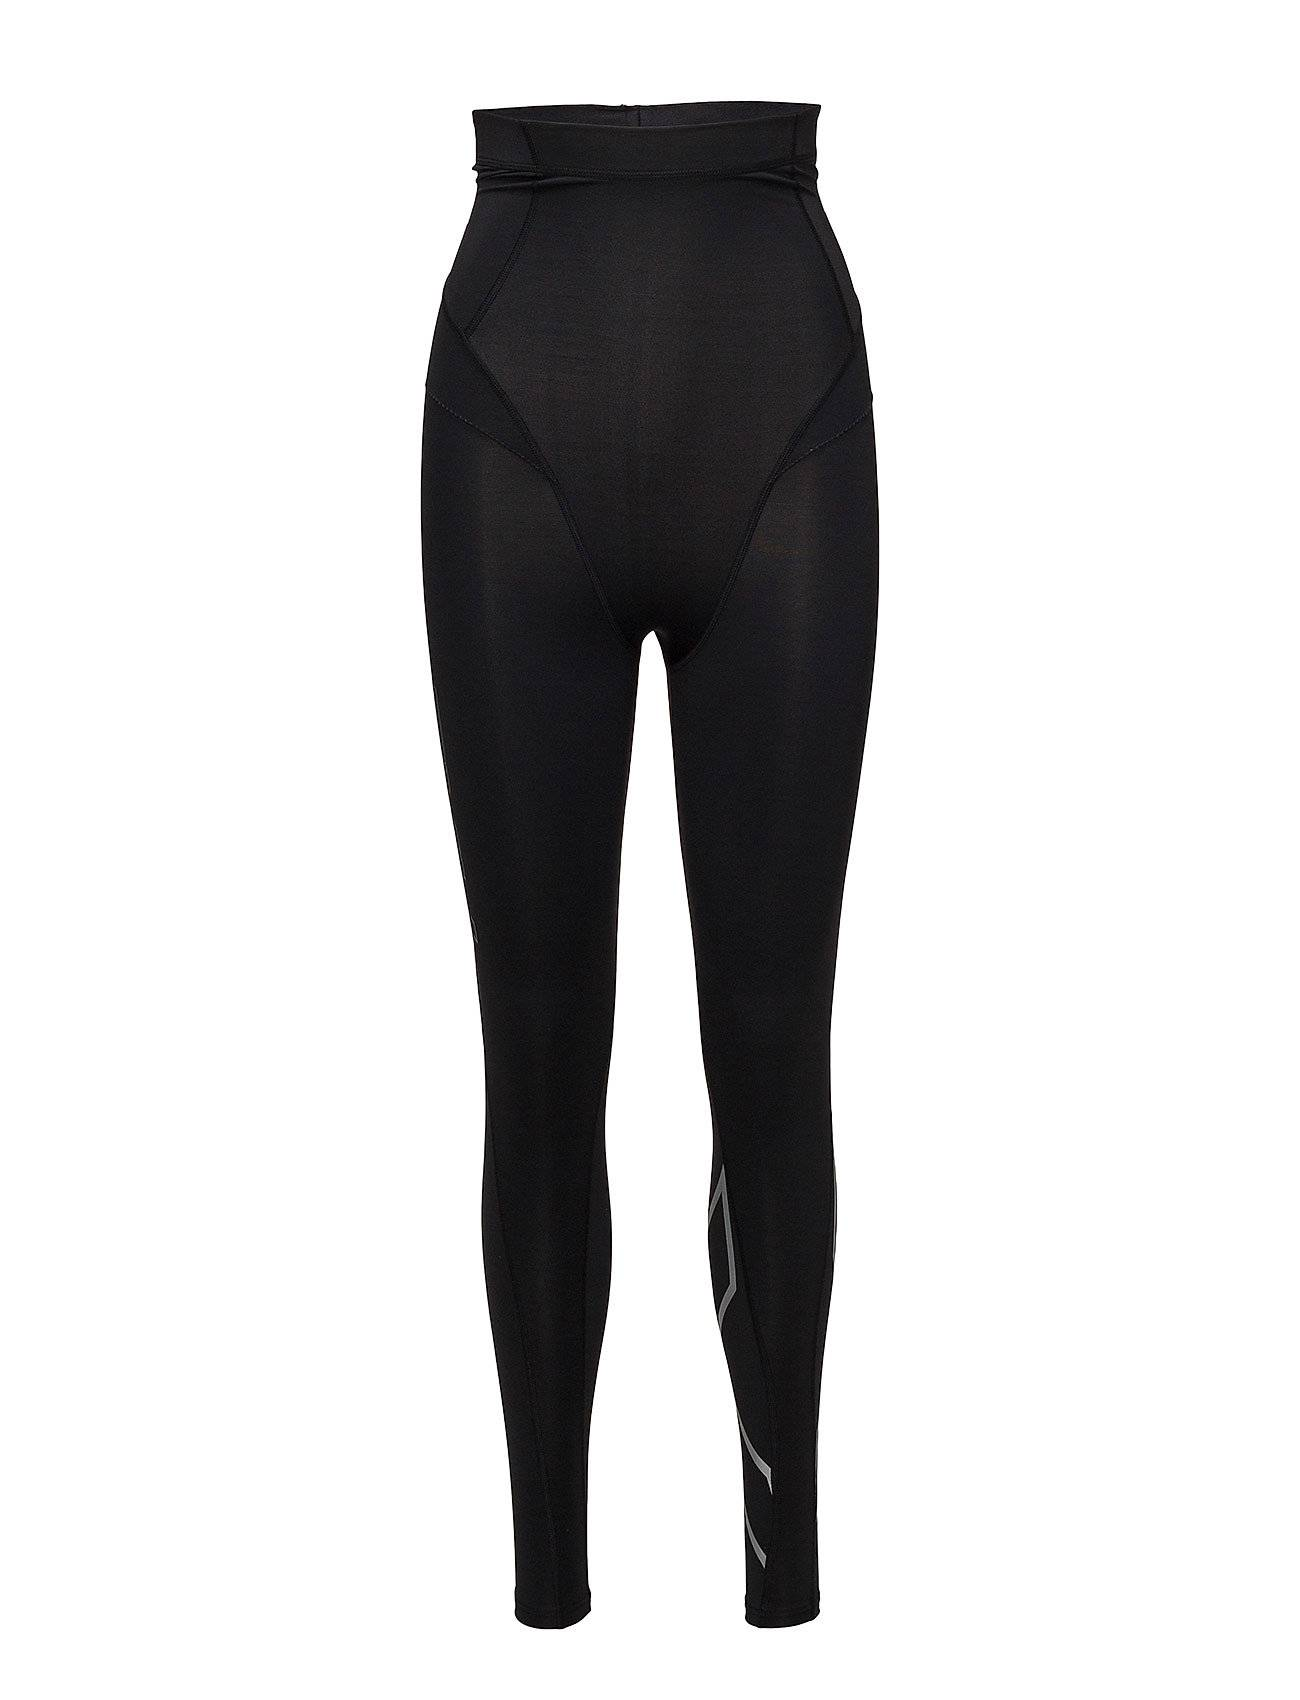 2XU Postnatal Maternity Comp Tights